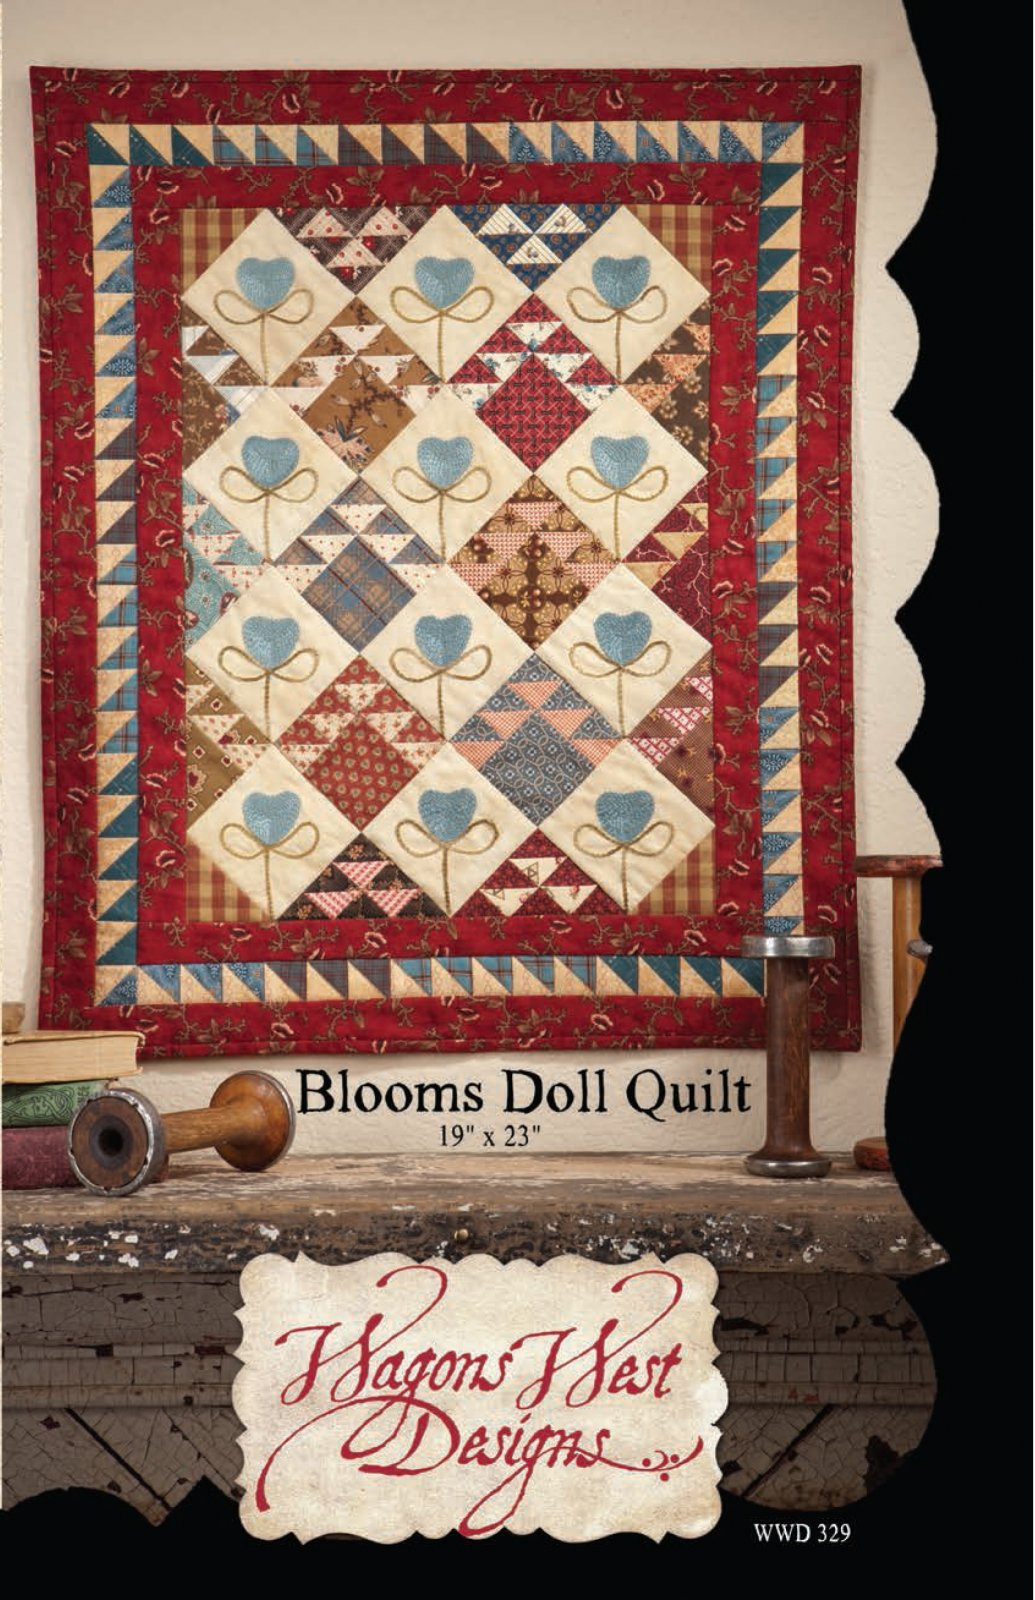 Blooms Doll Quilt